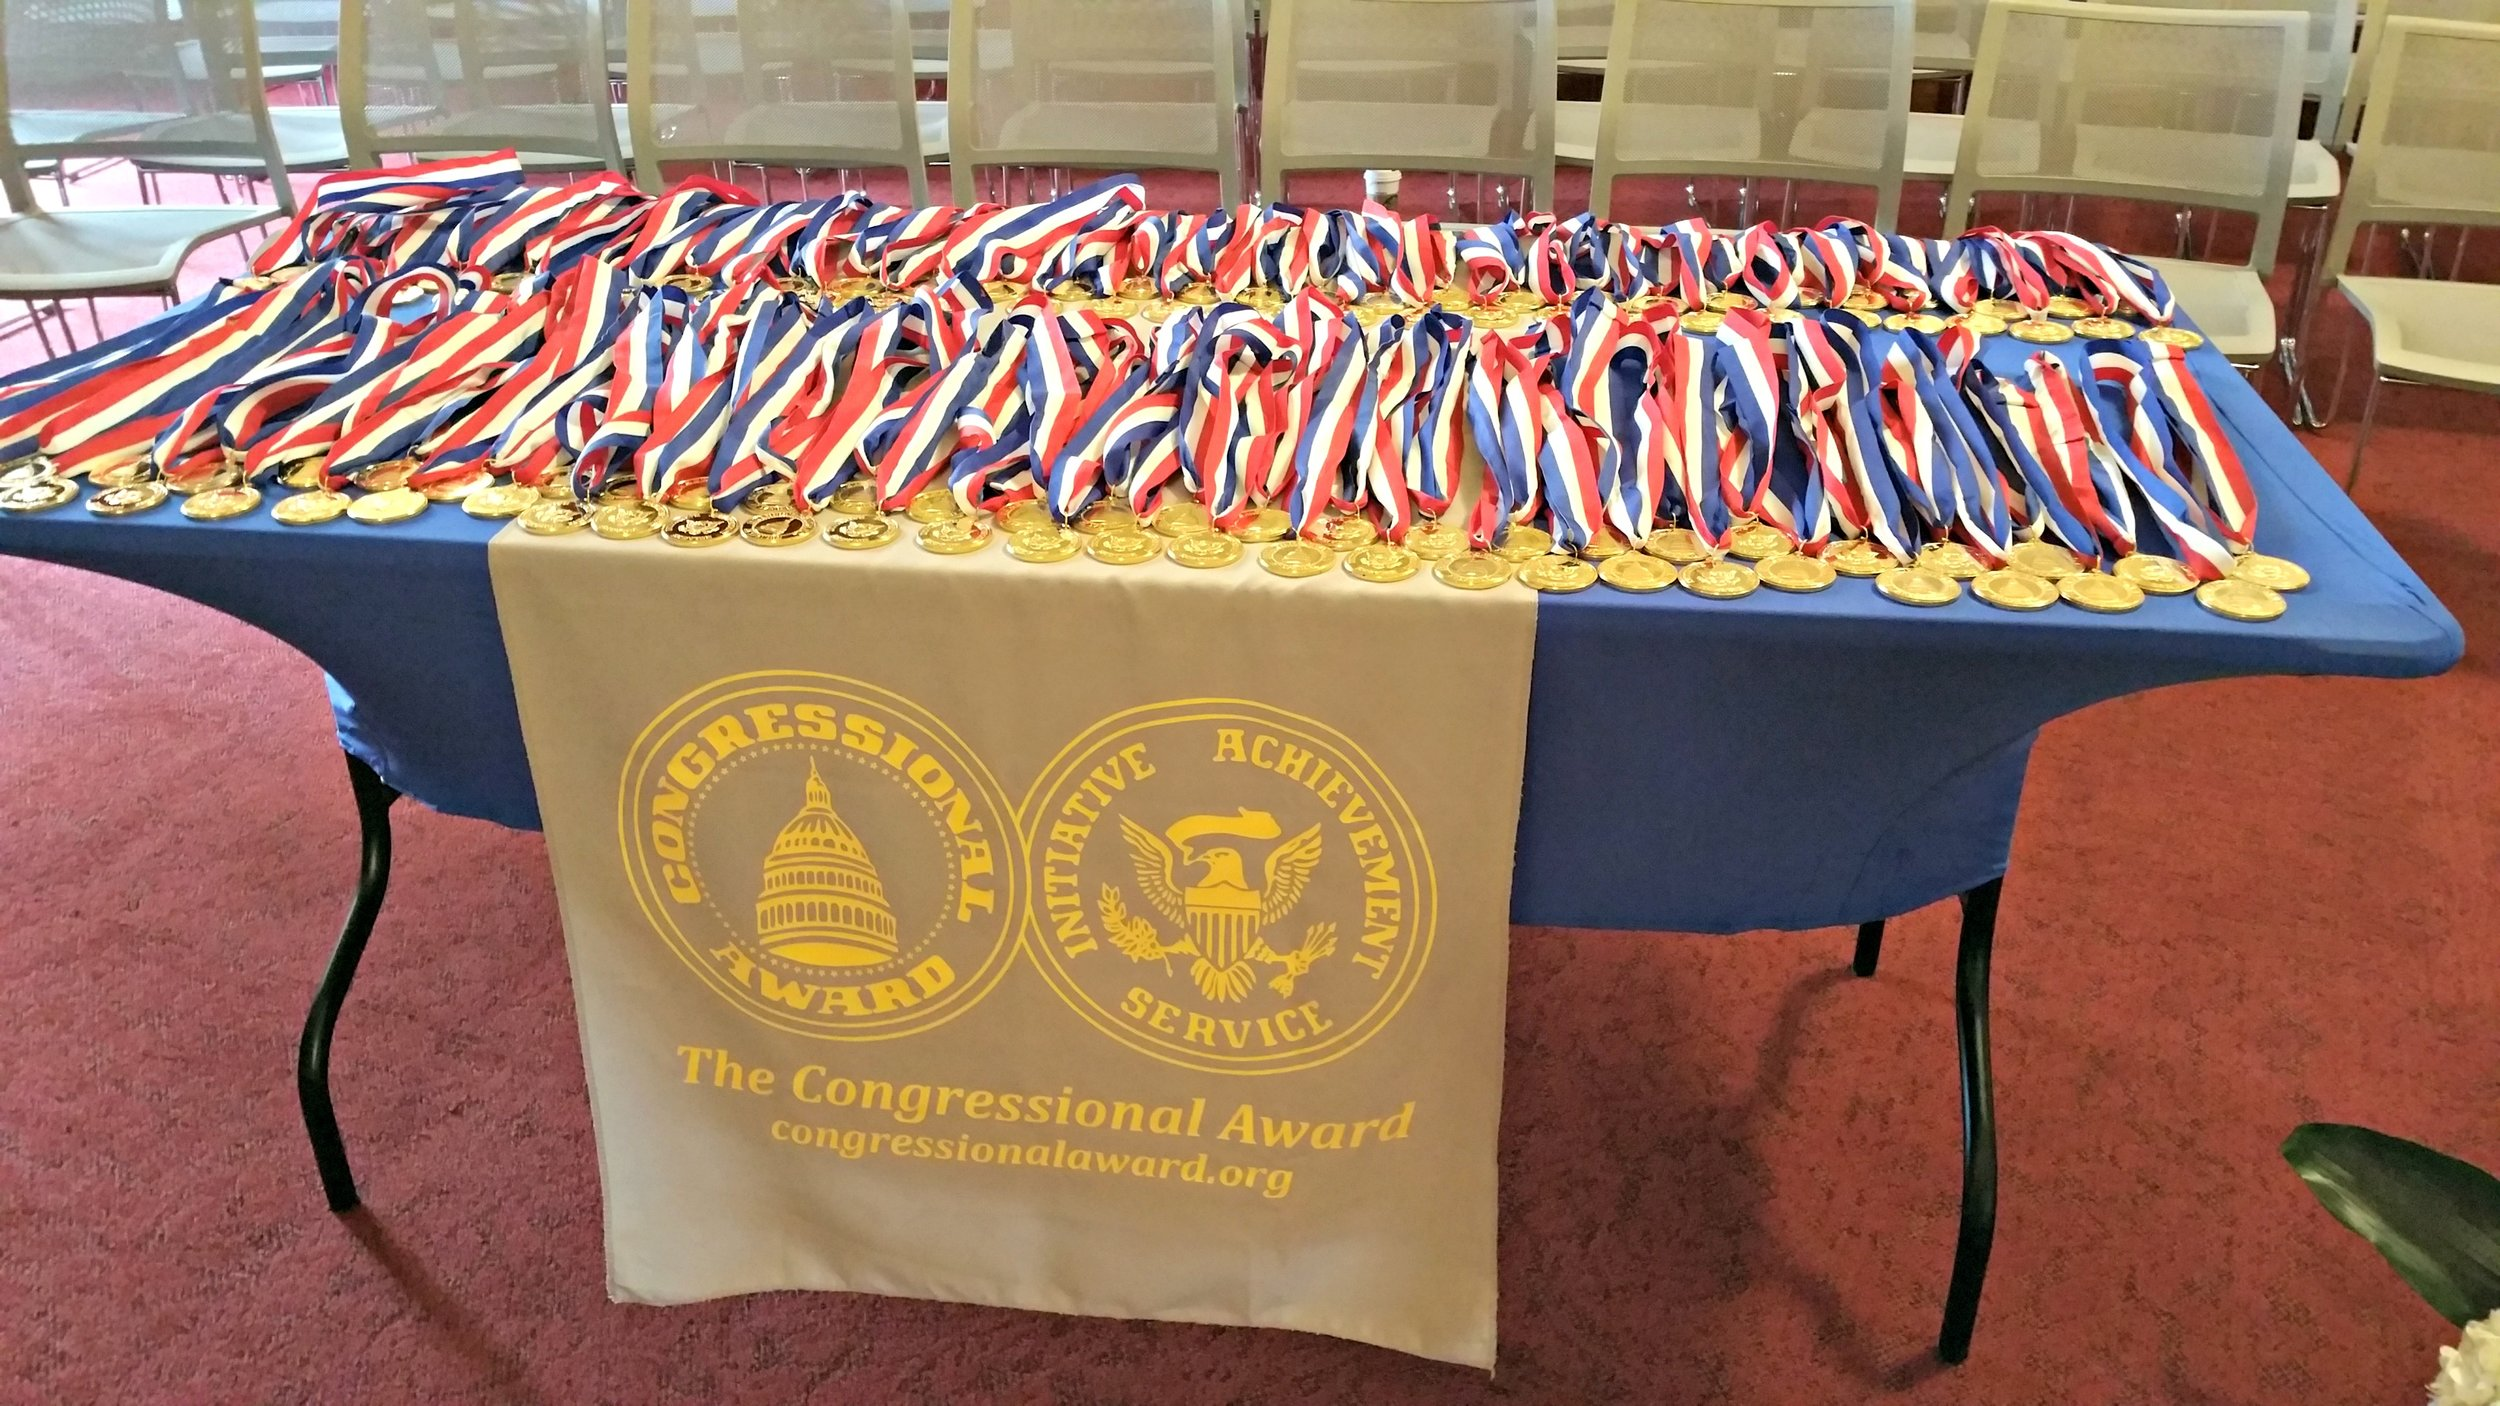 2016 Congressional Award Ceremony, Cannon Caucus Room on Capitol Hill, June 16, 2016